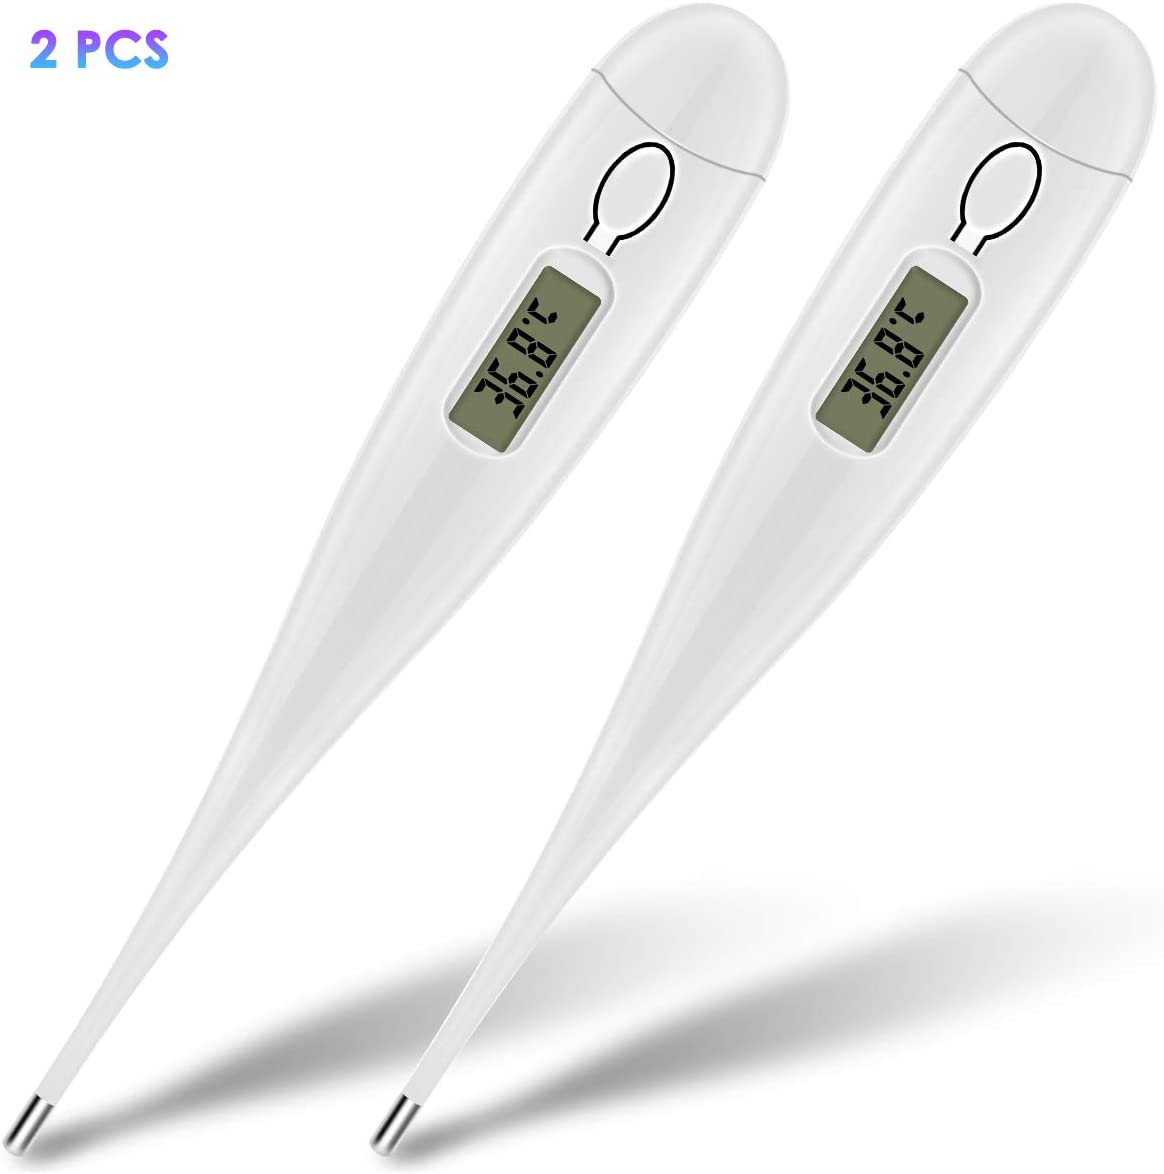 1 Pack Kids Flexible Tip Oral Armpit Temperature Meter with Fever Indicator for Newborns Children Adults Wallfire Digital Medical Thermometer Baby Body Thermometer Oral Armpit Temperature Meter